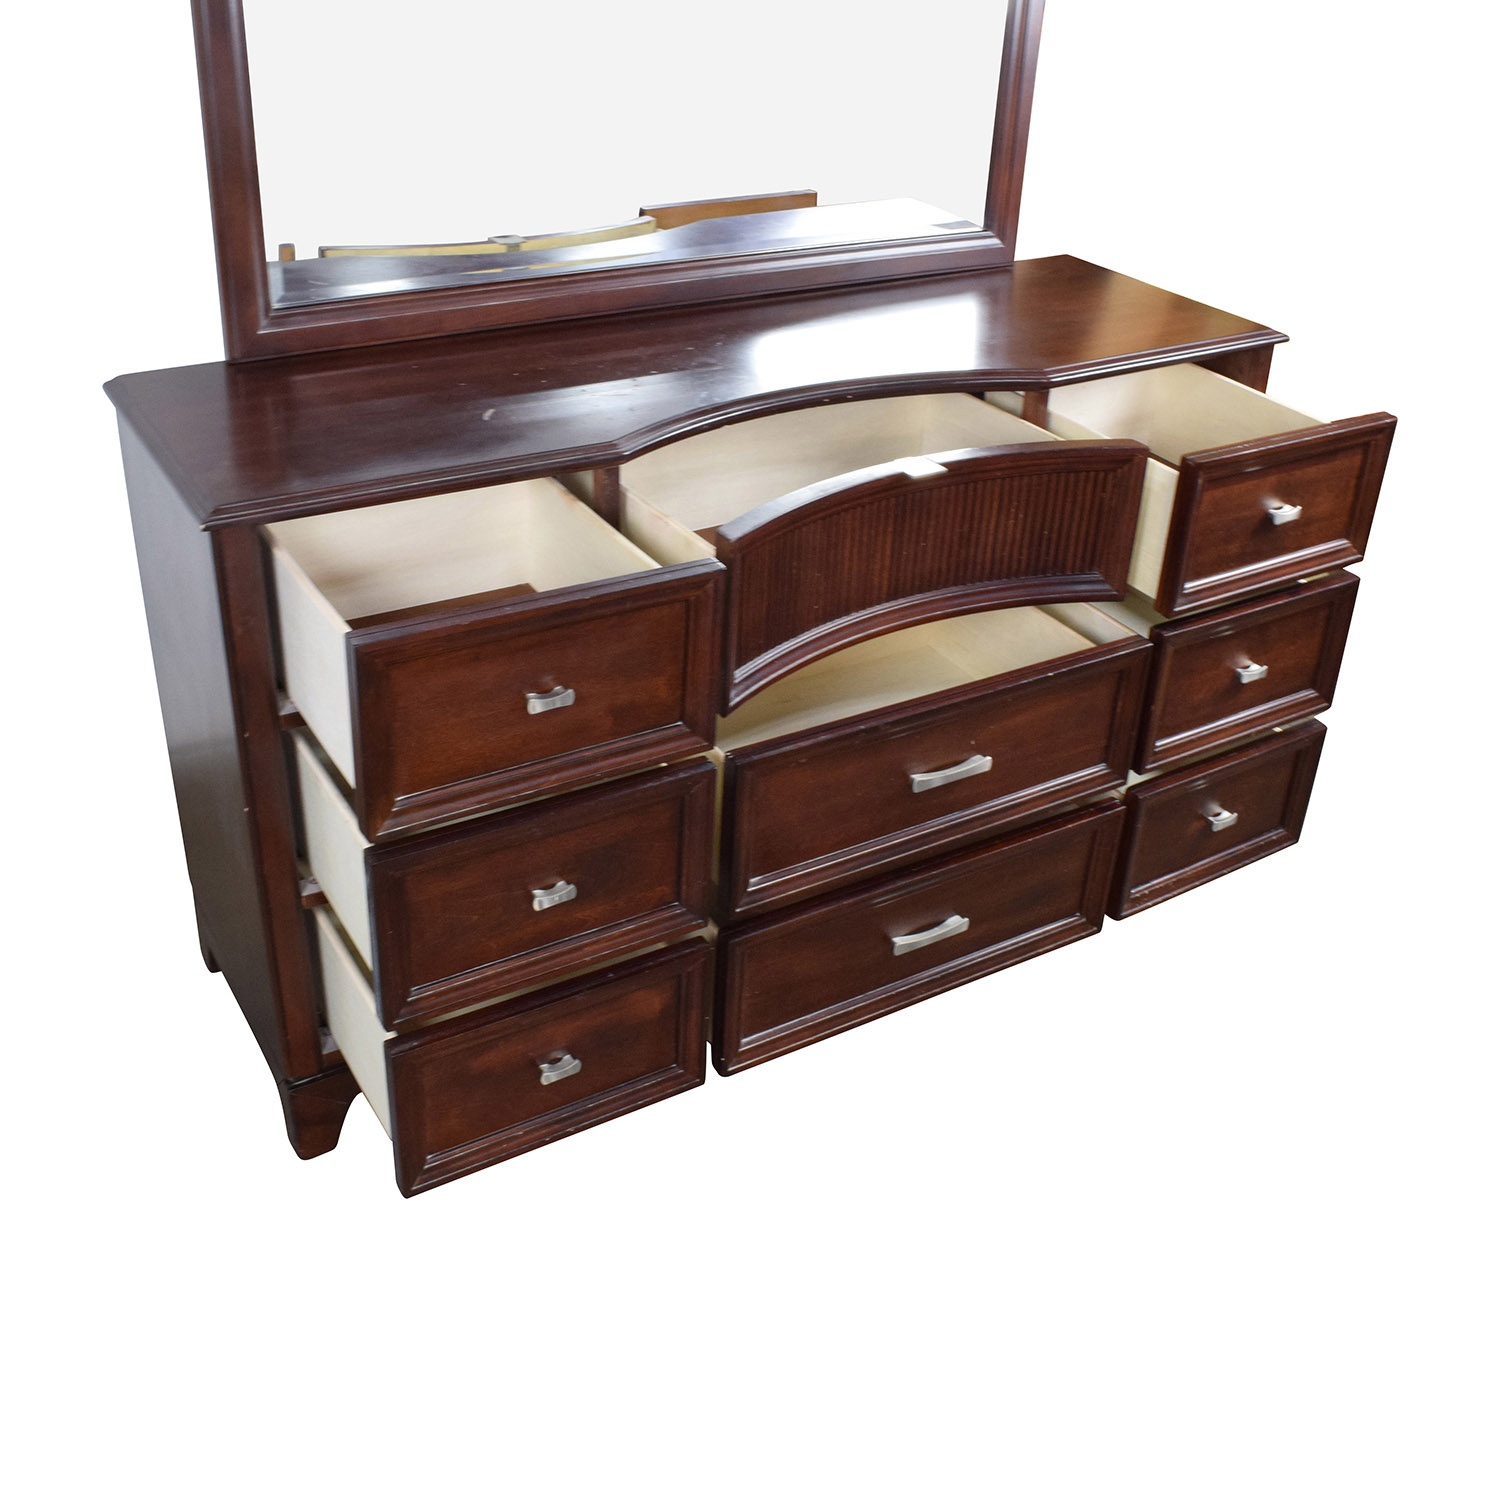 Nice ... Bobs Furniture Cherry Wood Dresser With Mirror / Storage ...